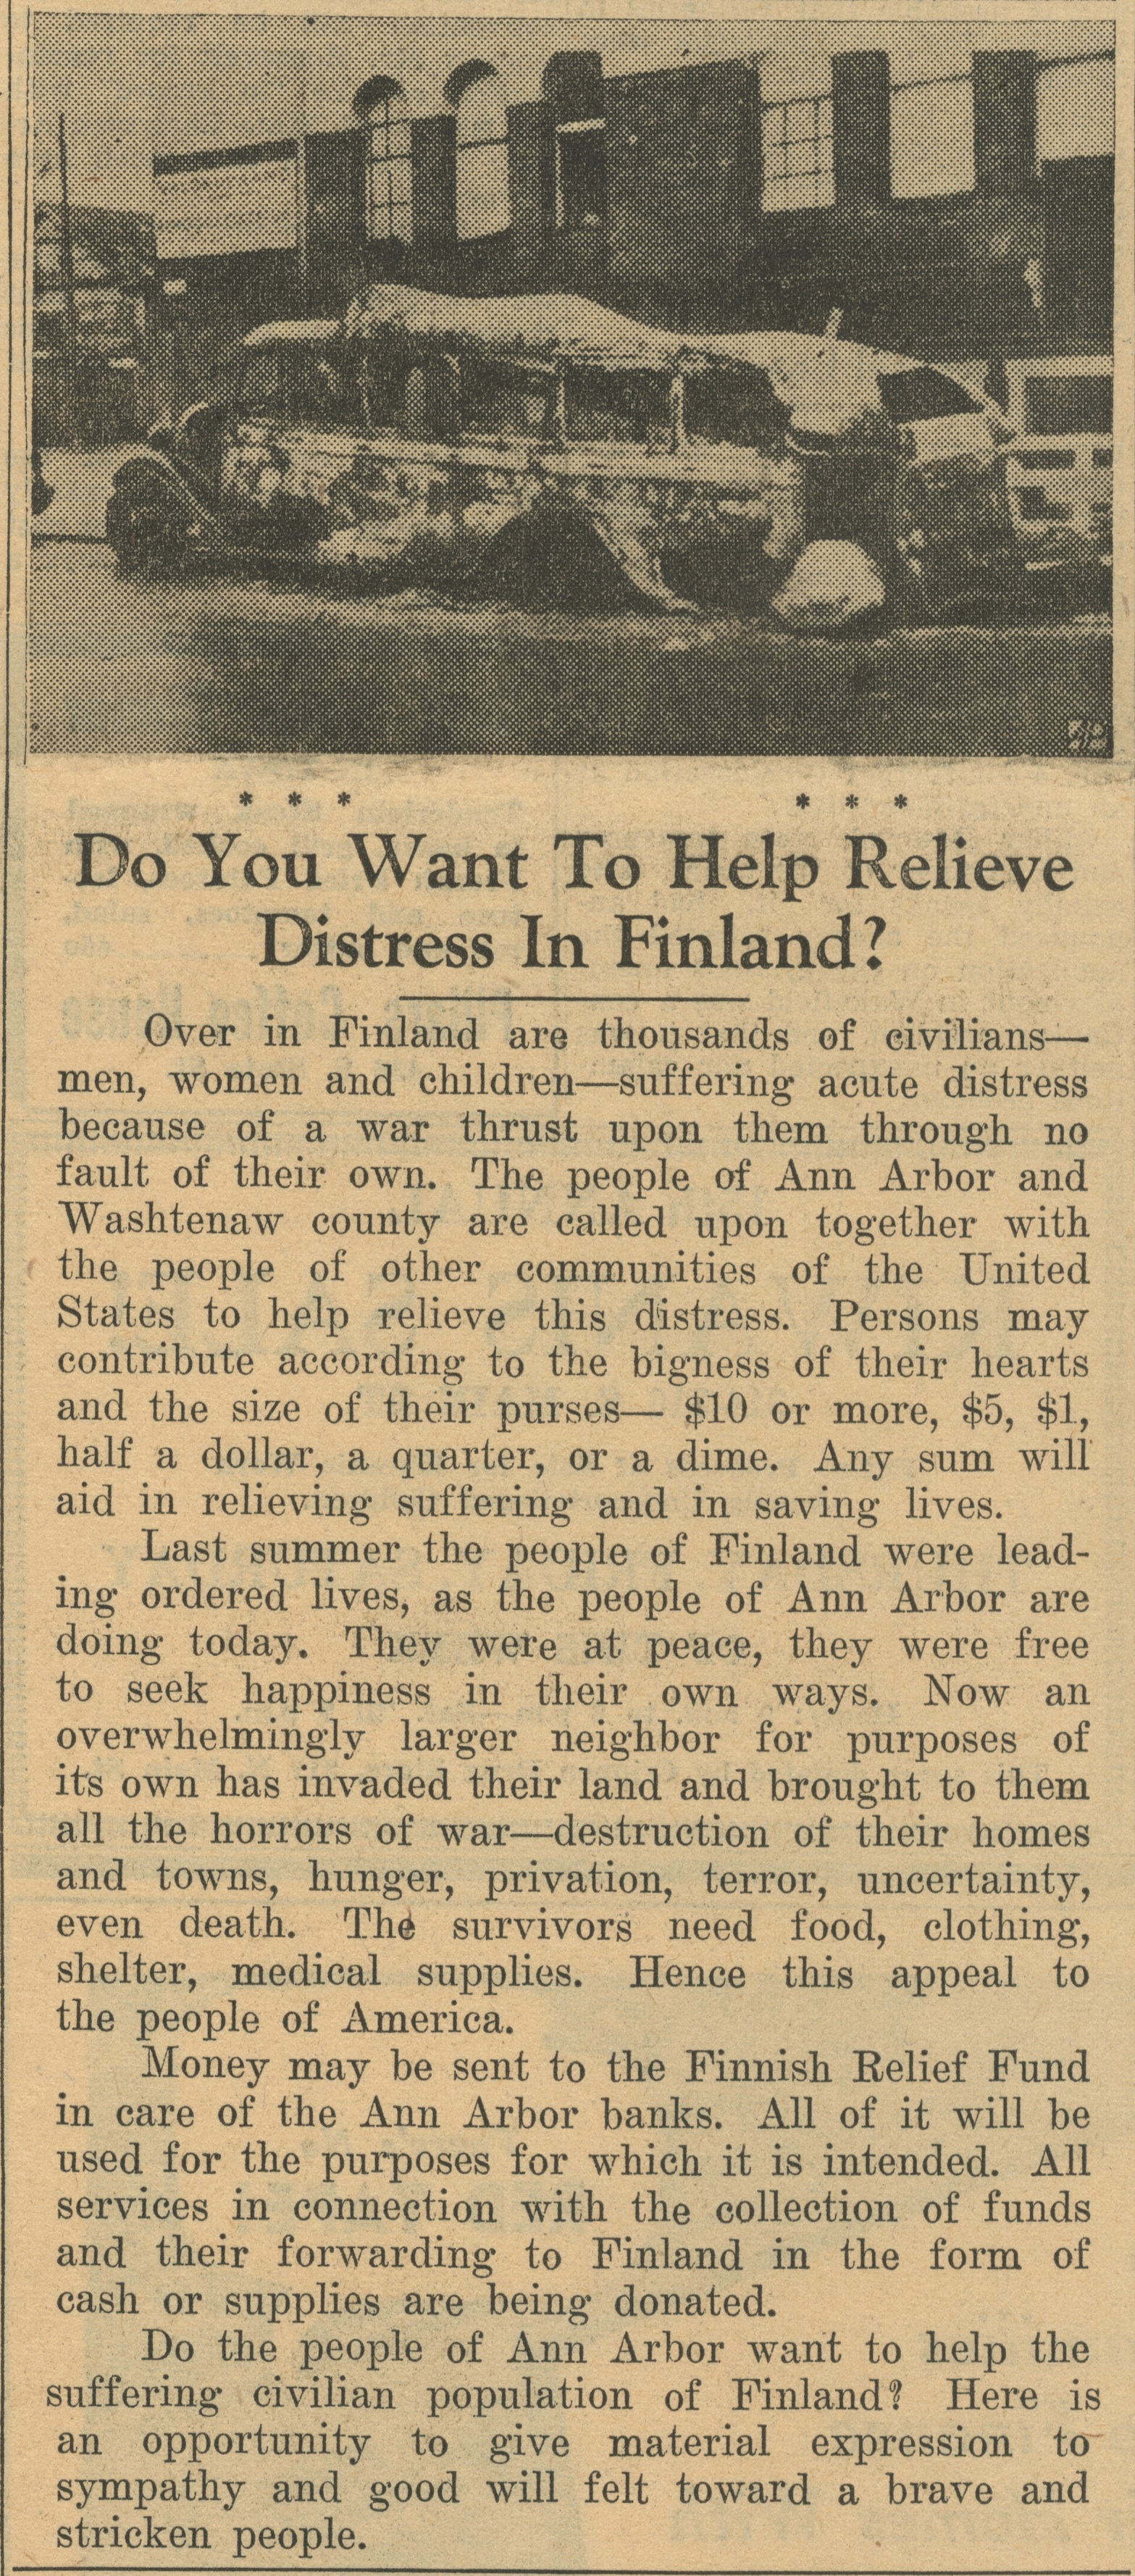 Do You Want To Help Relieve Distress In Finland? image